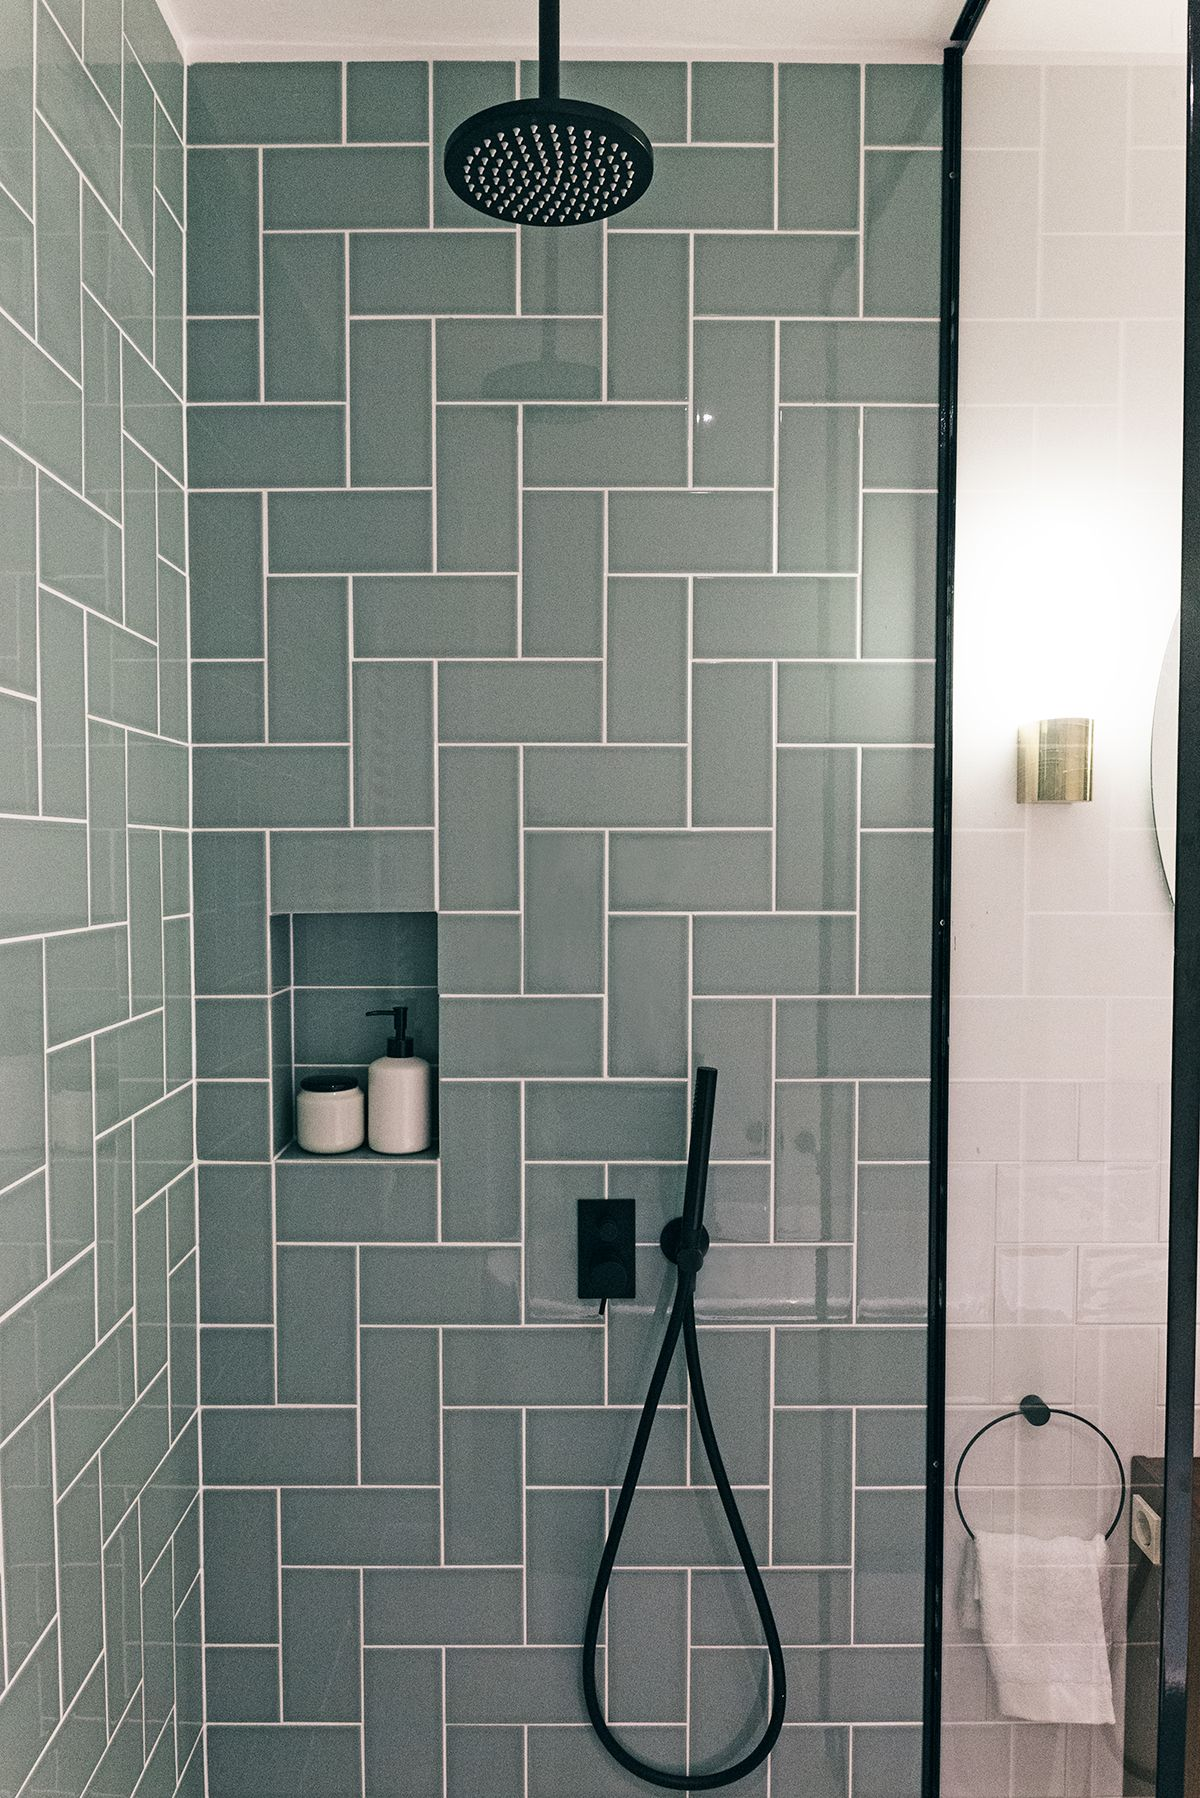 Contemporary bathroom with black faucets, tiles in a herringbone ...